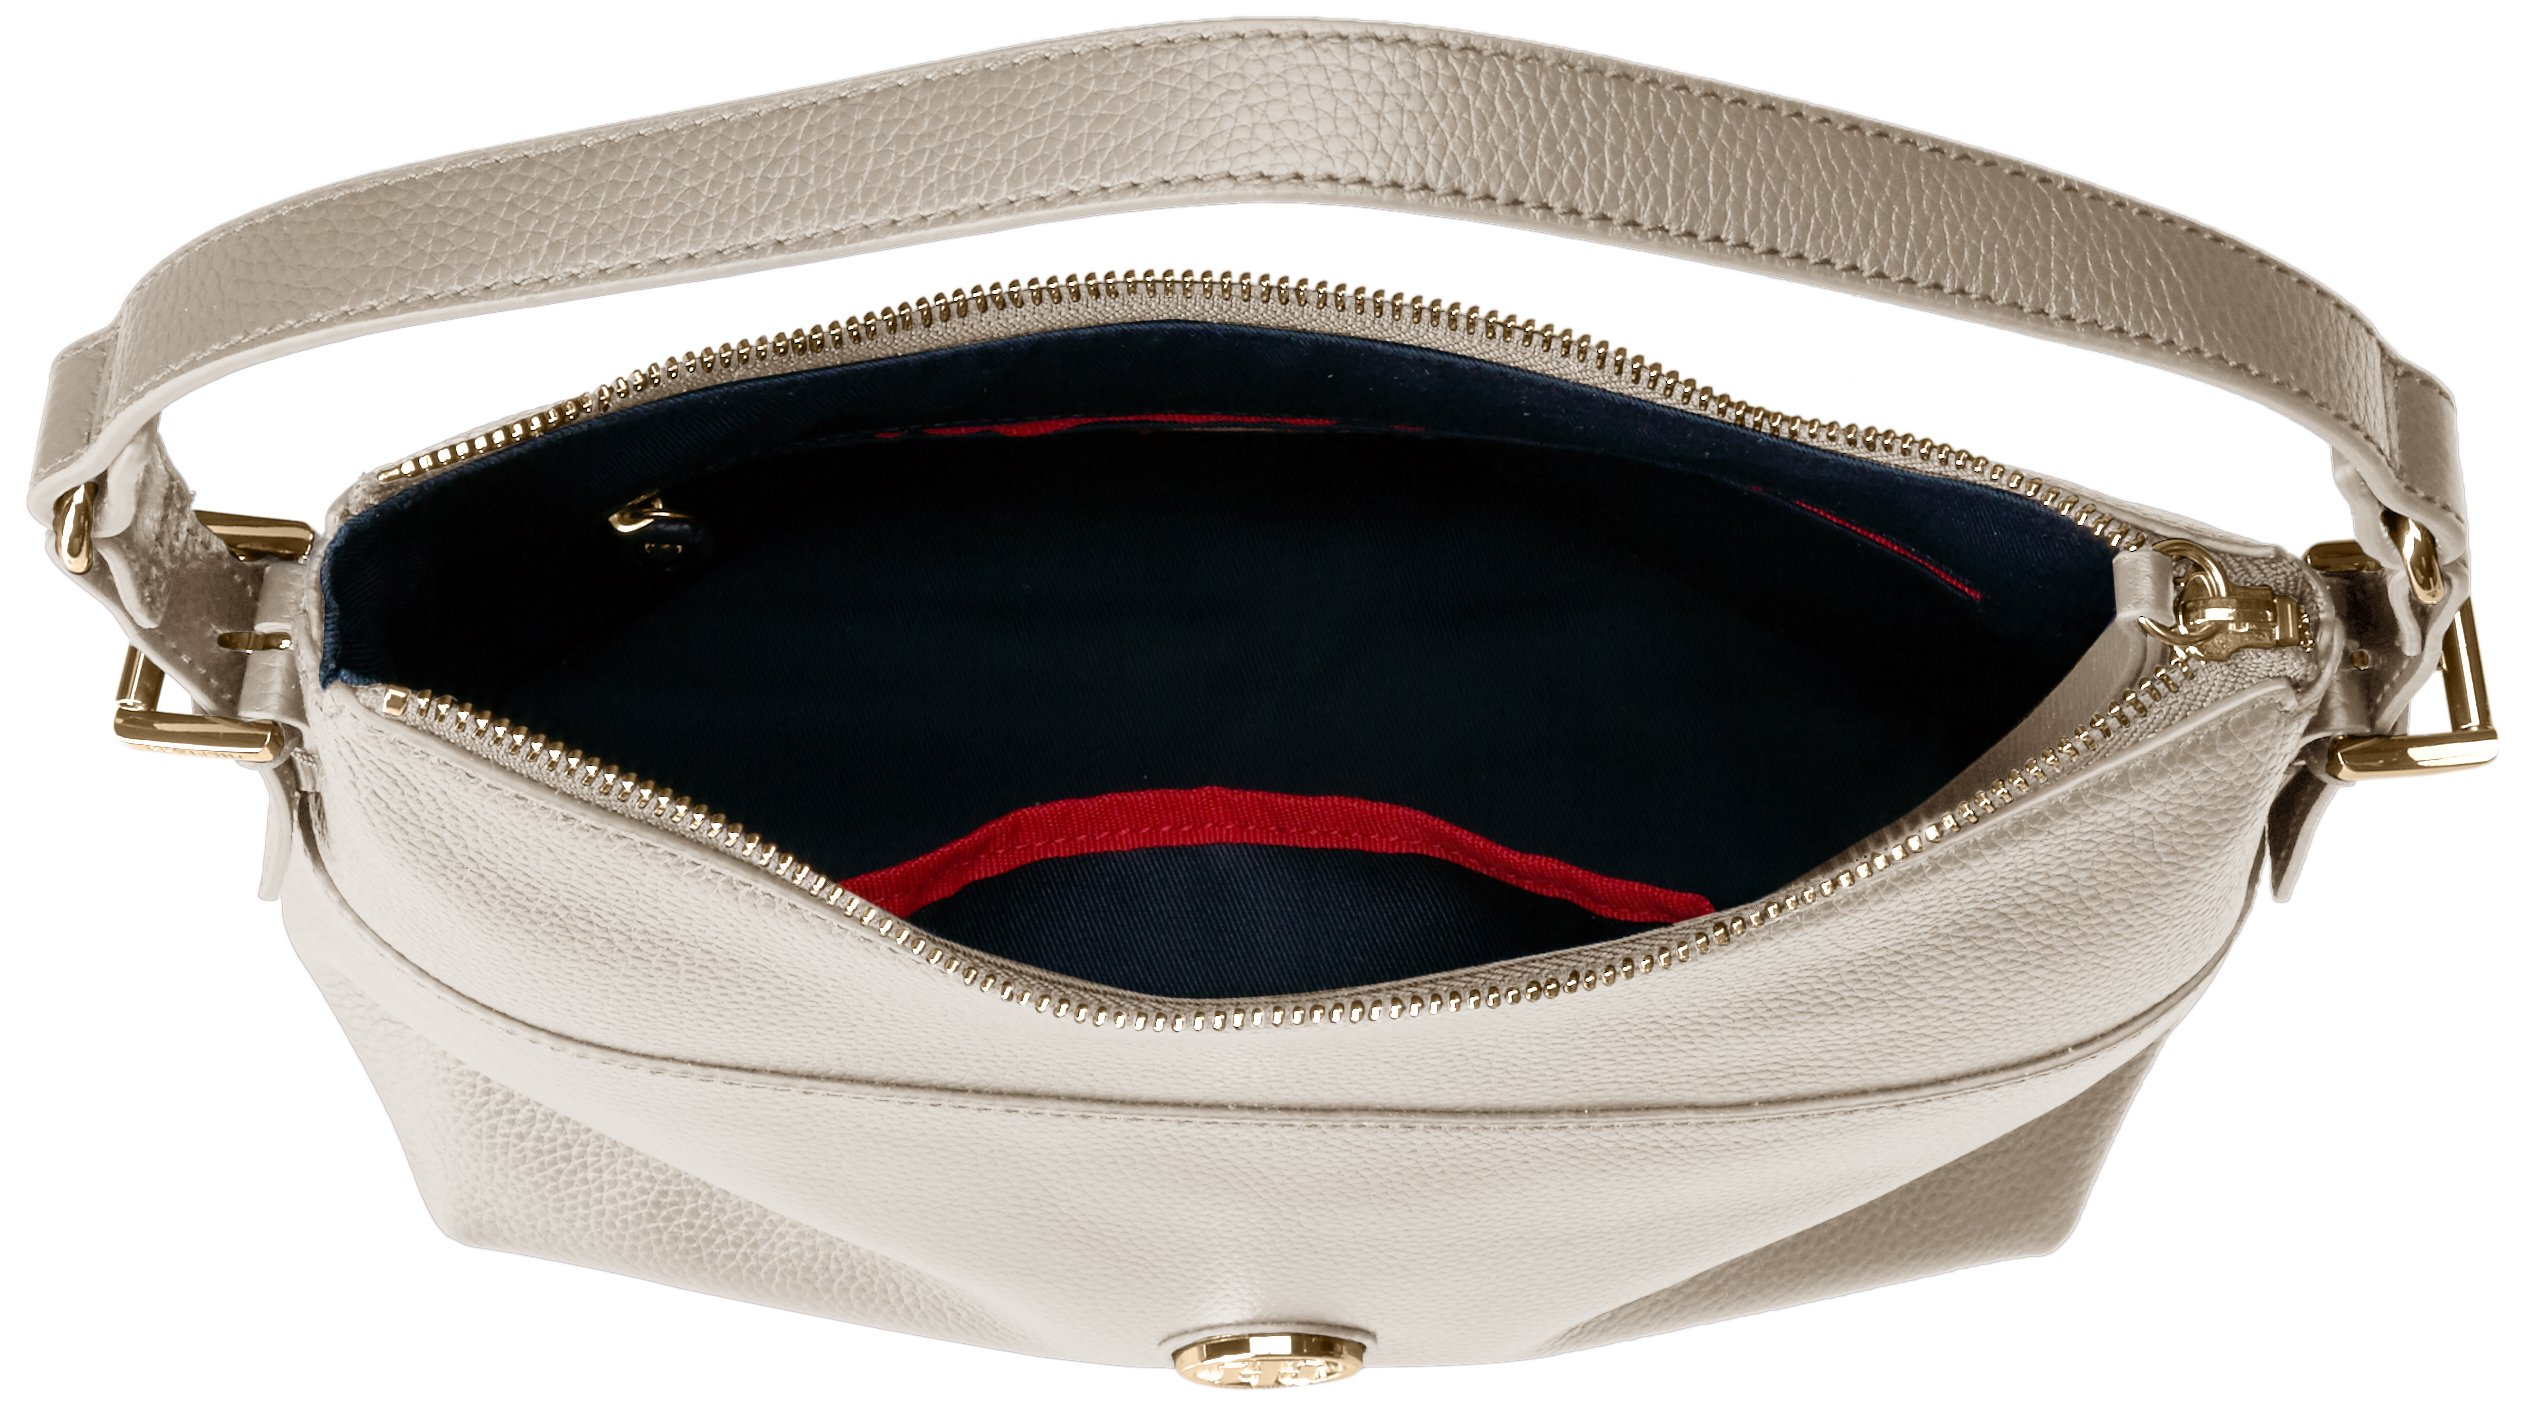 Tommy Hilfiger Purse for Women TH Summer of Love Hobo, Oatmeal by Tommy Hilfiger (Image #5)